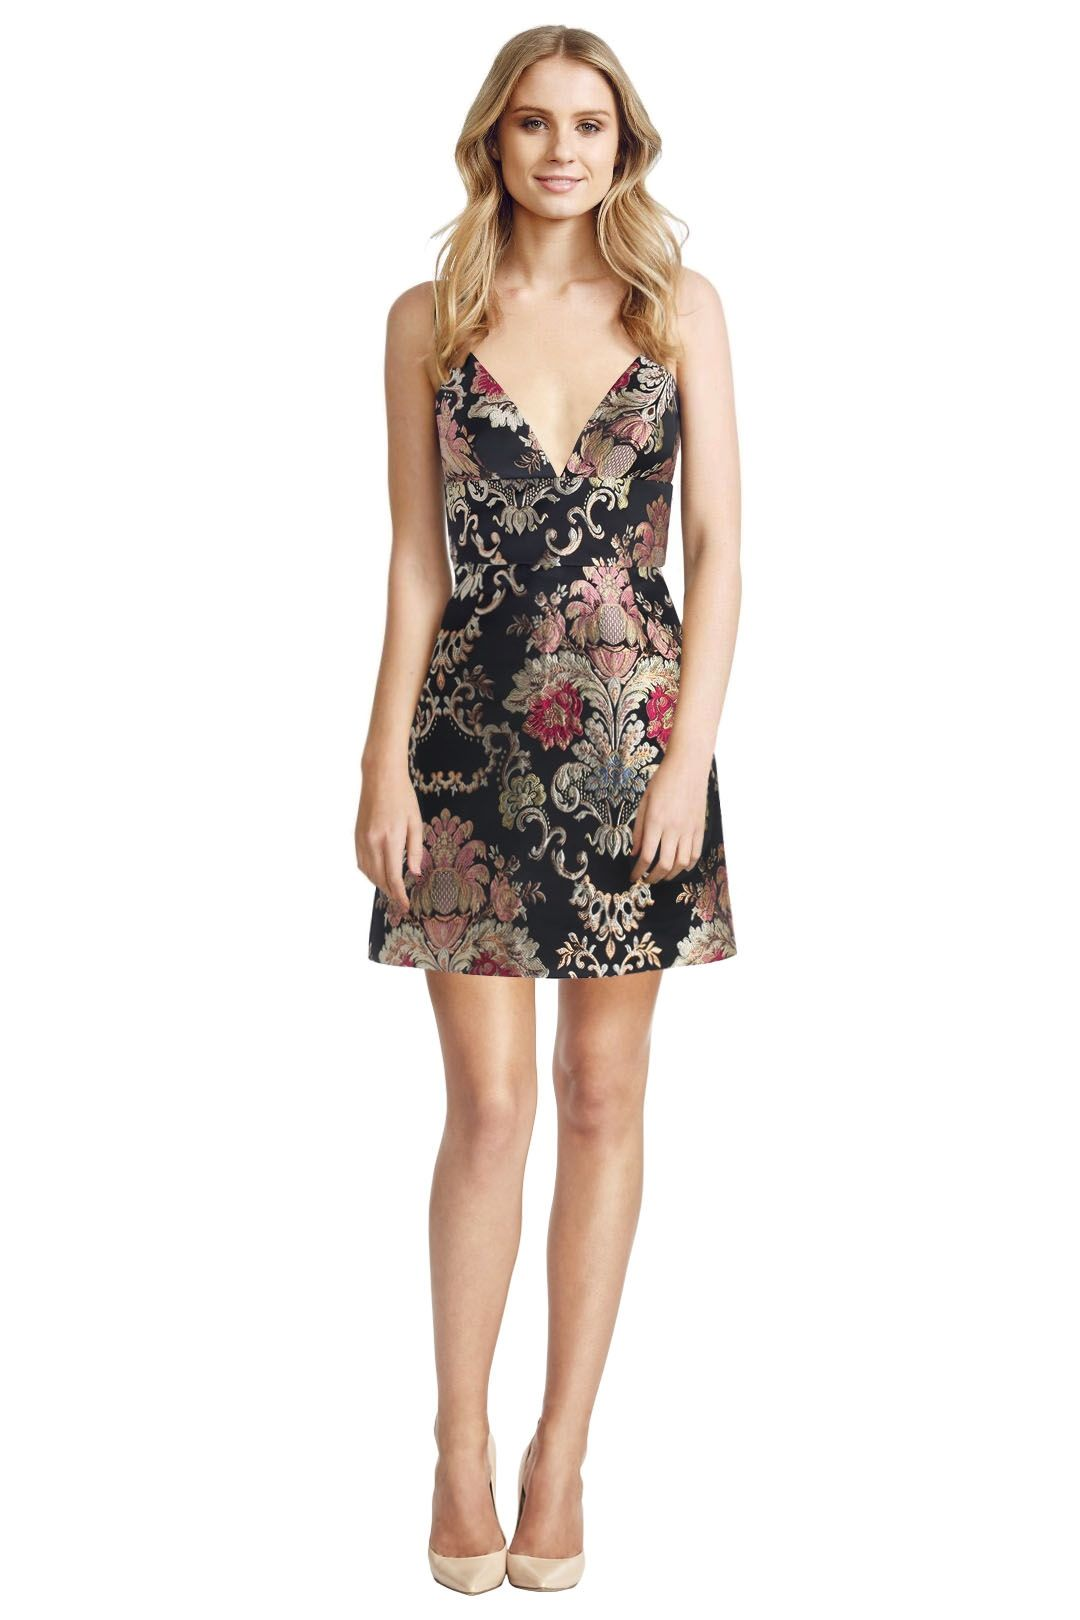 Zimmermann - Mischeif Wallpaper Dress - Black Floral - Front